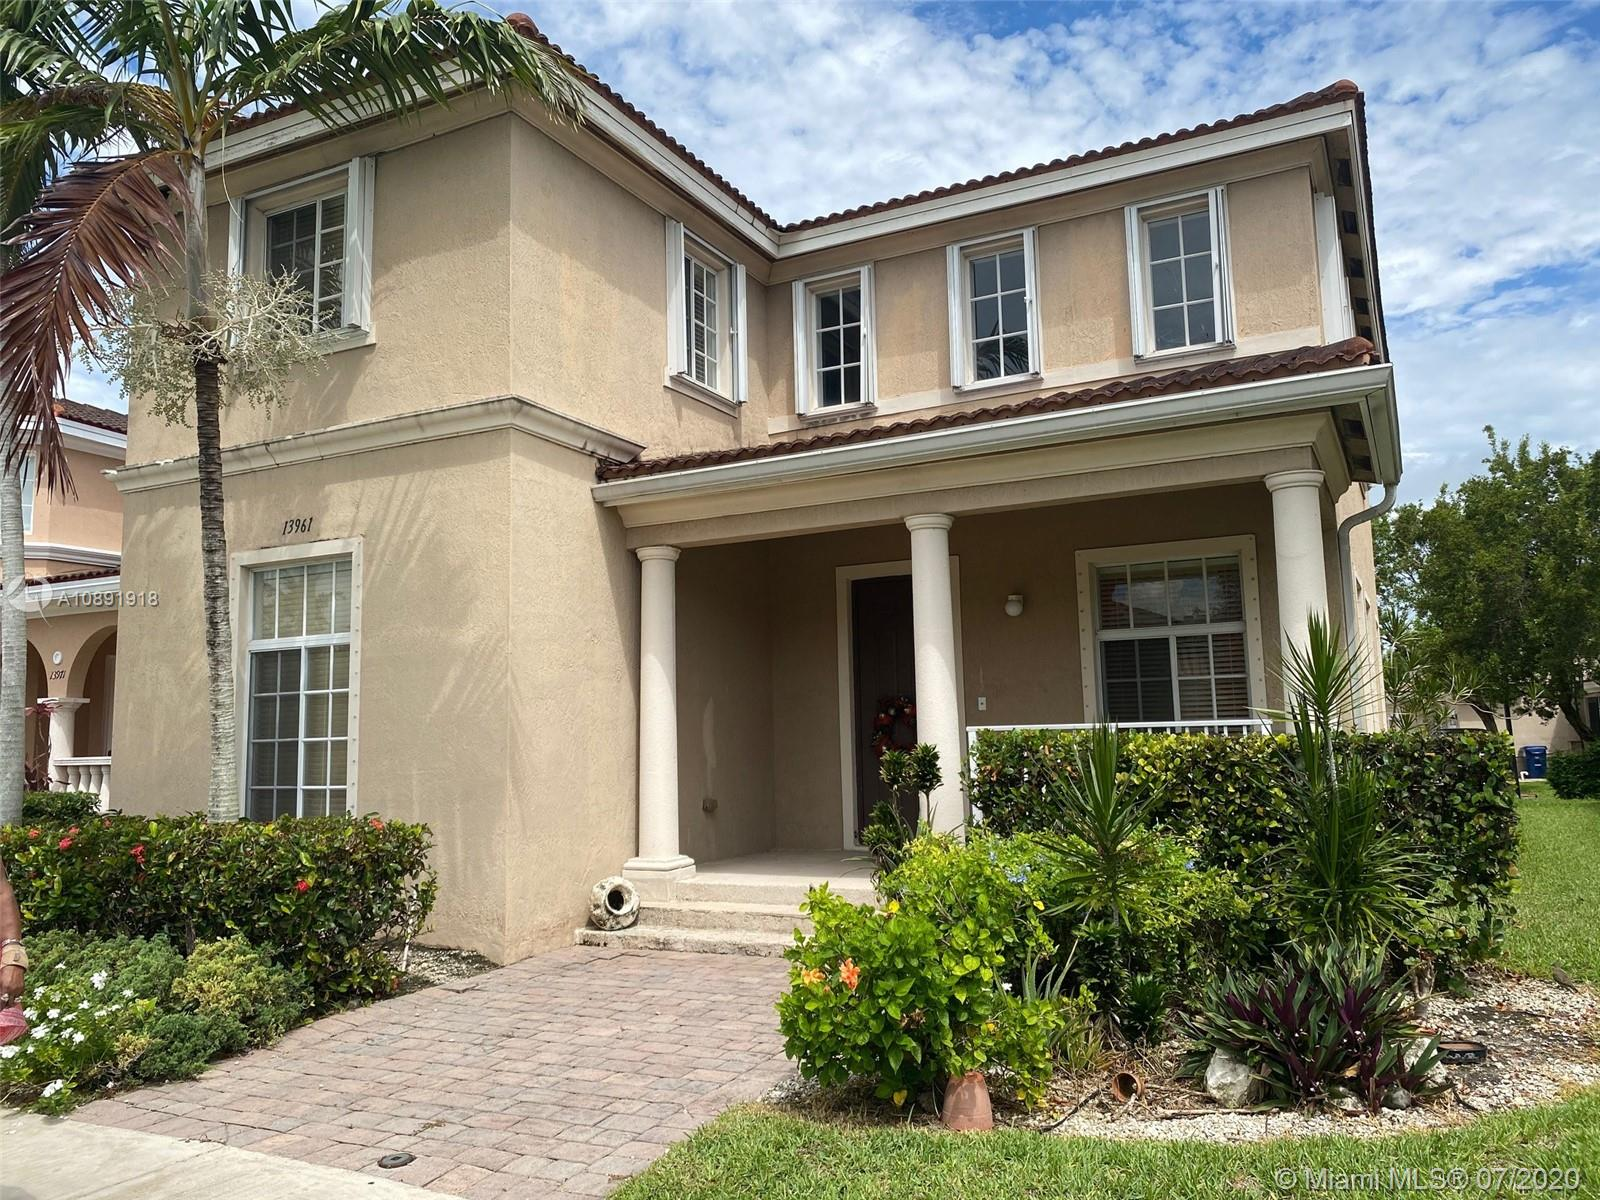 13961 SW 272nd St Property Photo - Homestead, FL real estate listing